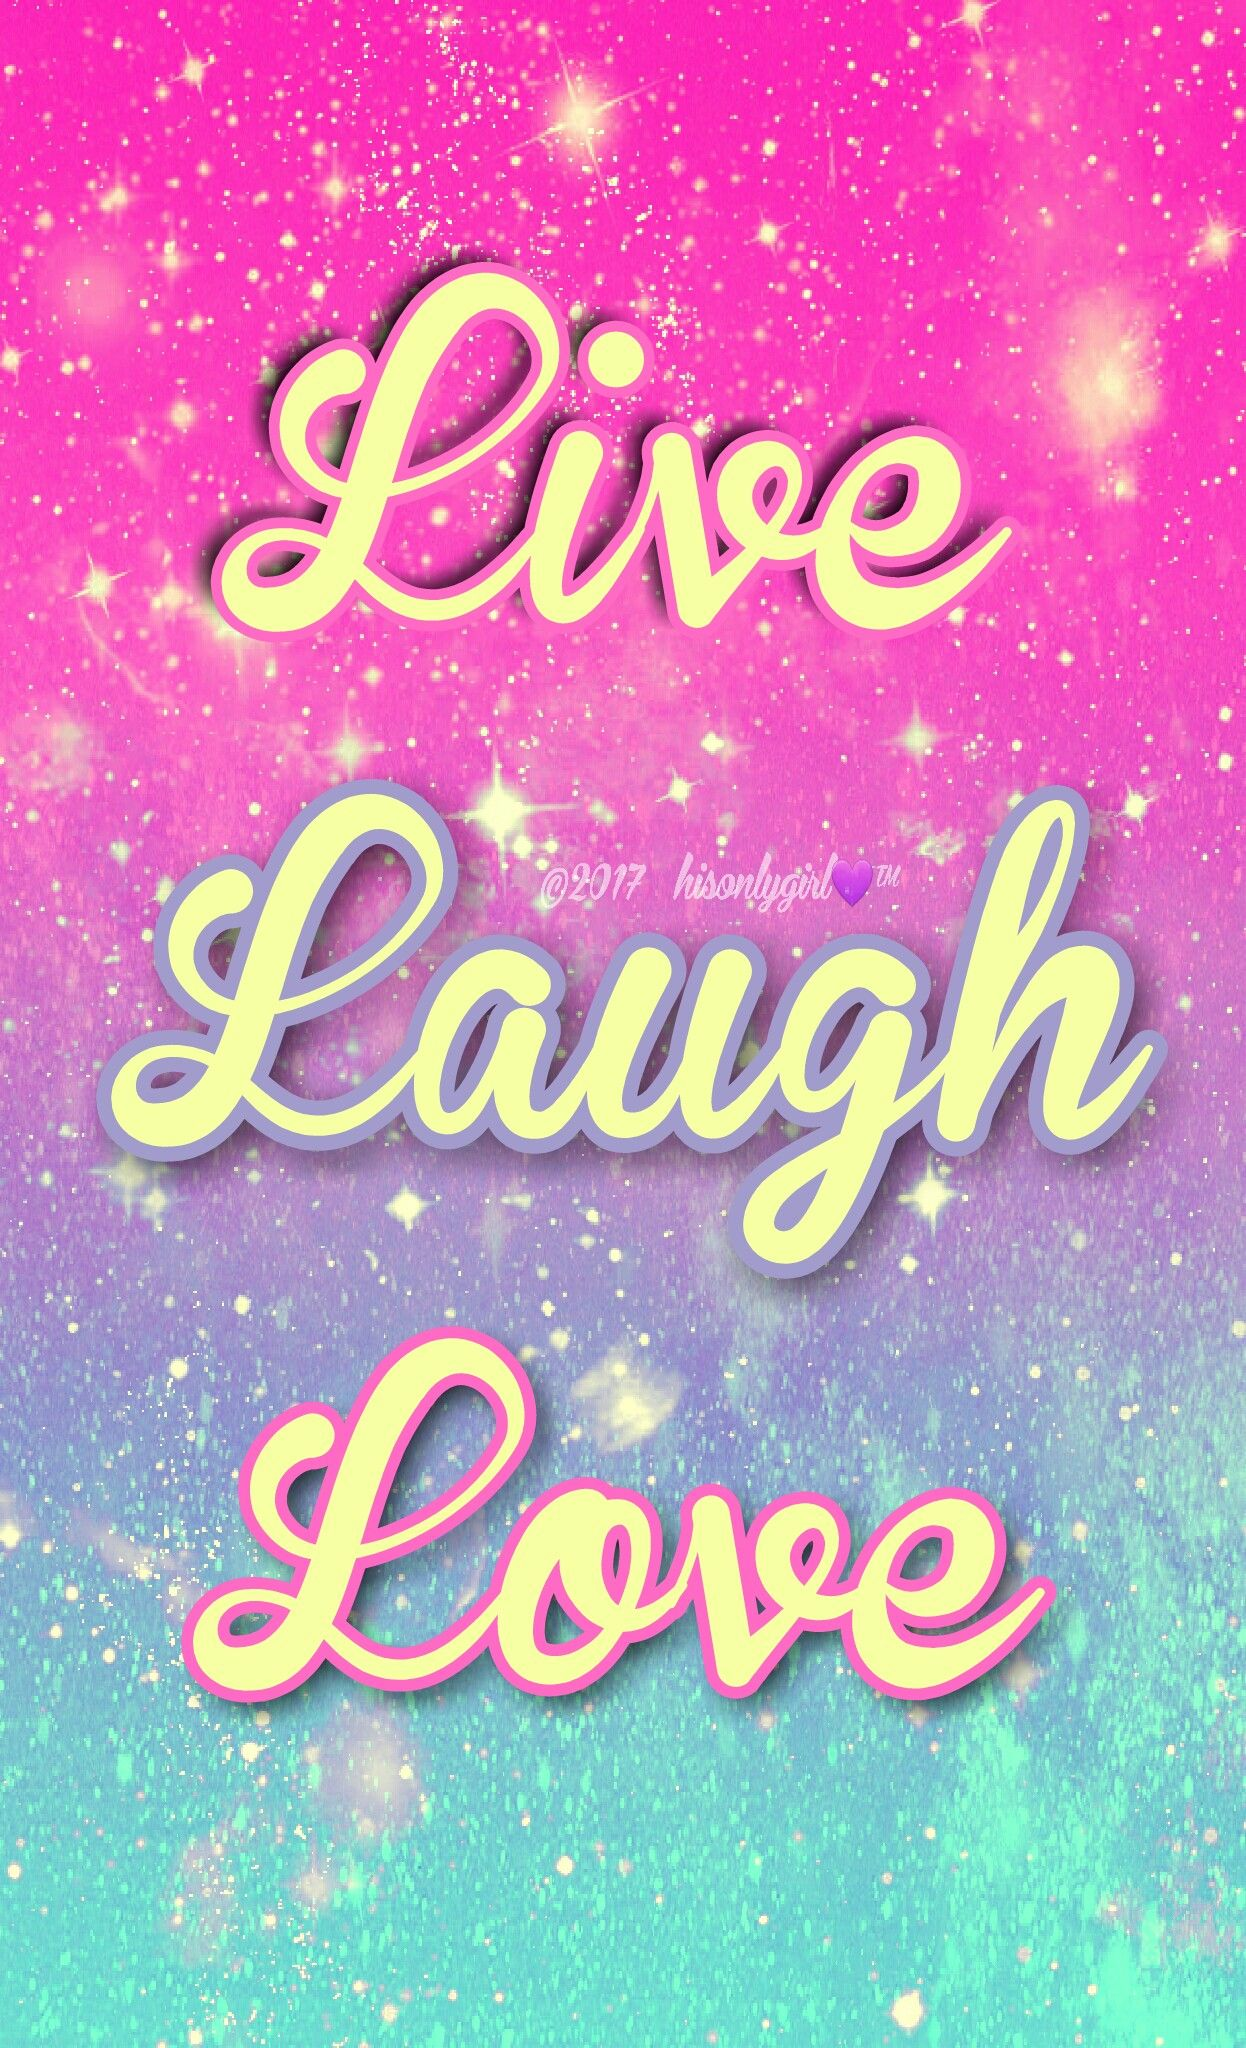 Live, Laugh, Love galaxy iPhone/Android wallpaper I created for the app CocoPPa. Enjoy! | Amanda ...